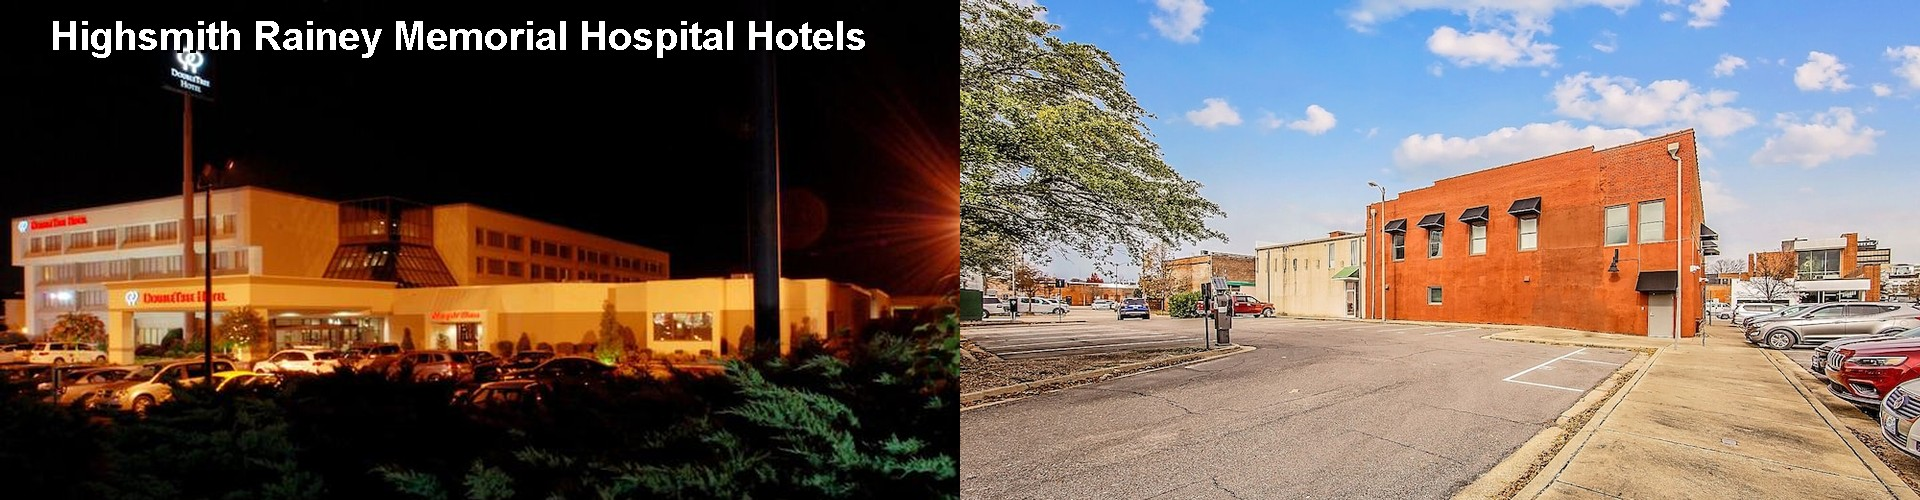 2 Best Hotels near Highsmith Rainey Memorial Hospital